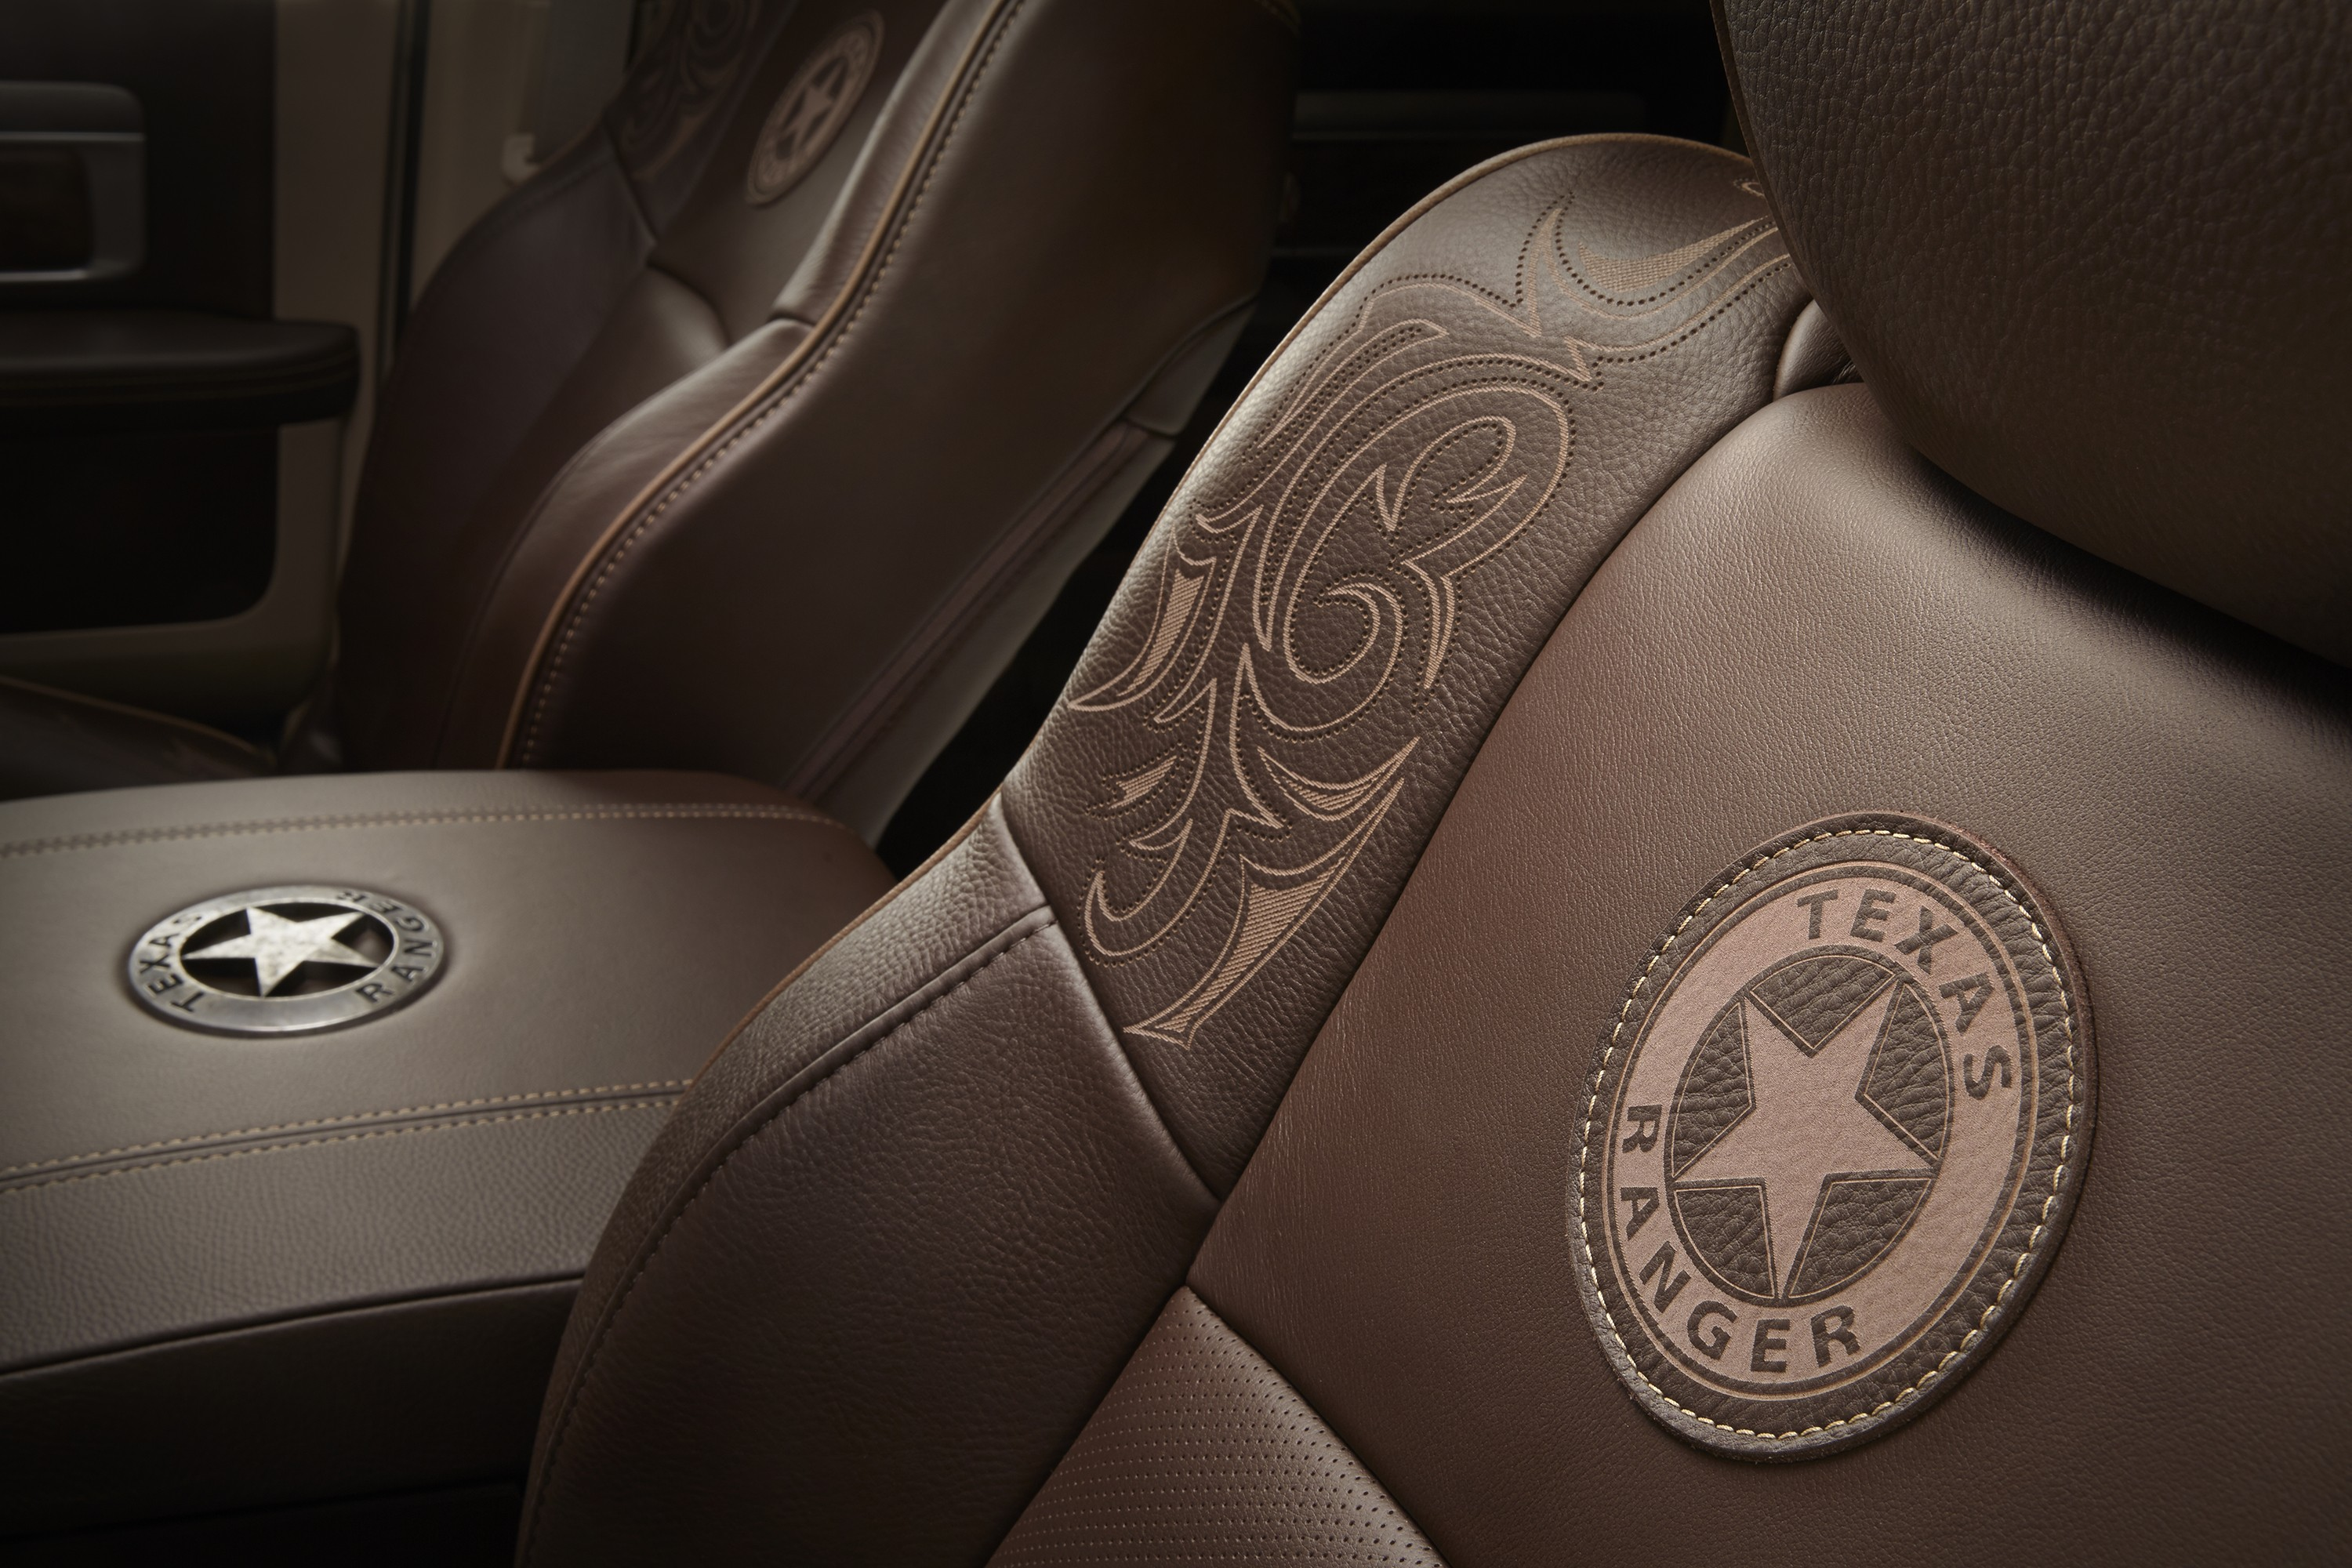 Ram celebrates the texas rangers with unique 1500 concept featuring their badge autoevolution for Texas leather interiors dallas